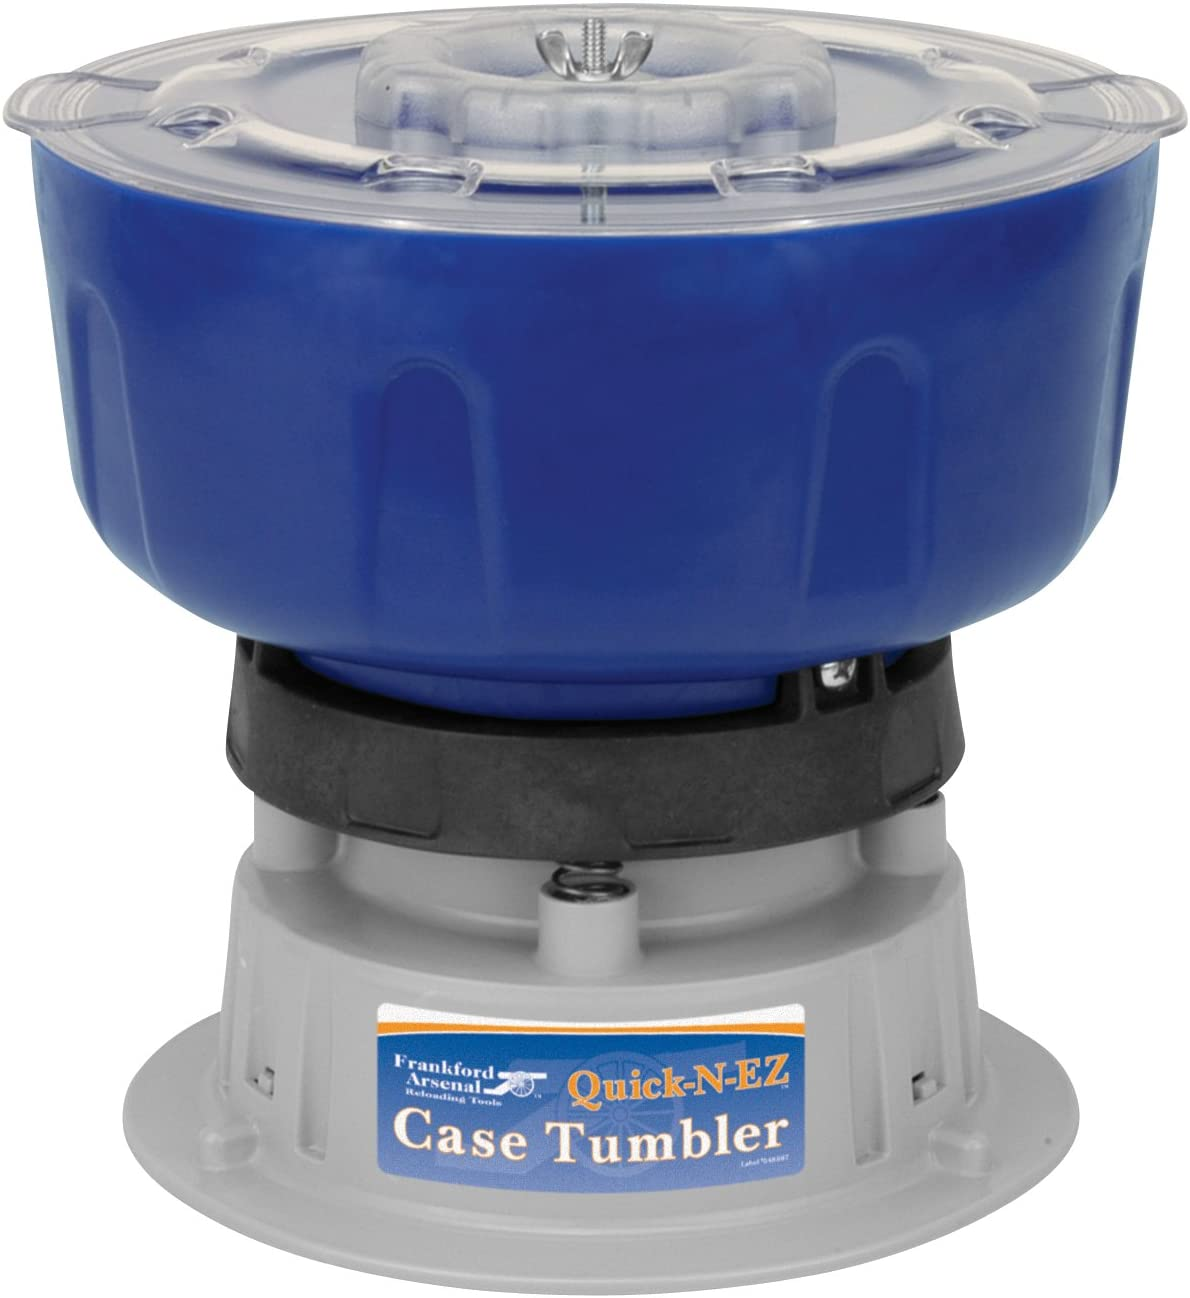 Frankford Arsenal Quick-N-EZ Case Tumbler with 220 Volt Motor and International Plug in for Brass Cleaning and Reloading